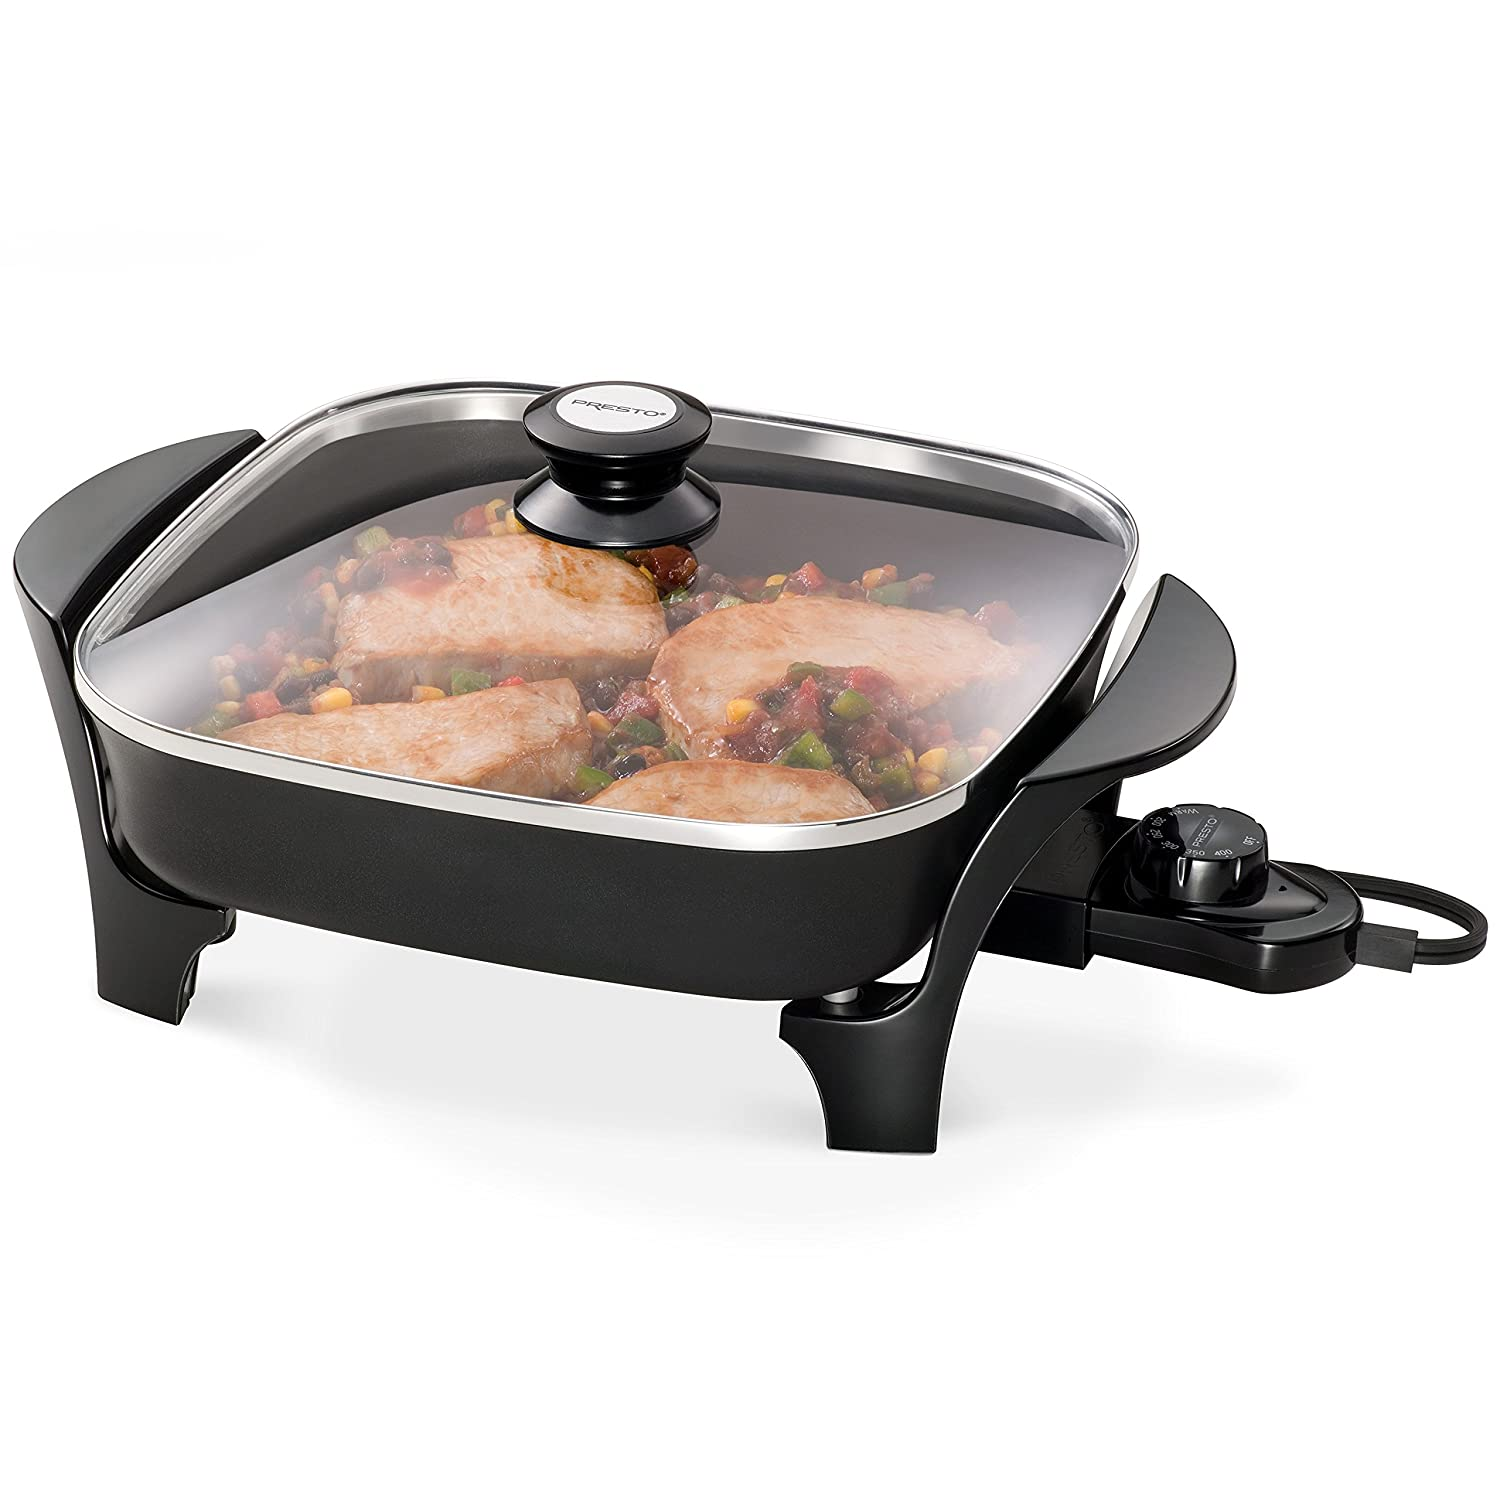 Presto 06626 11 inch Electric Skillet w//glass lid